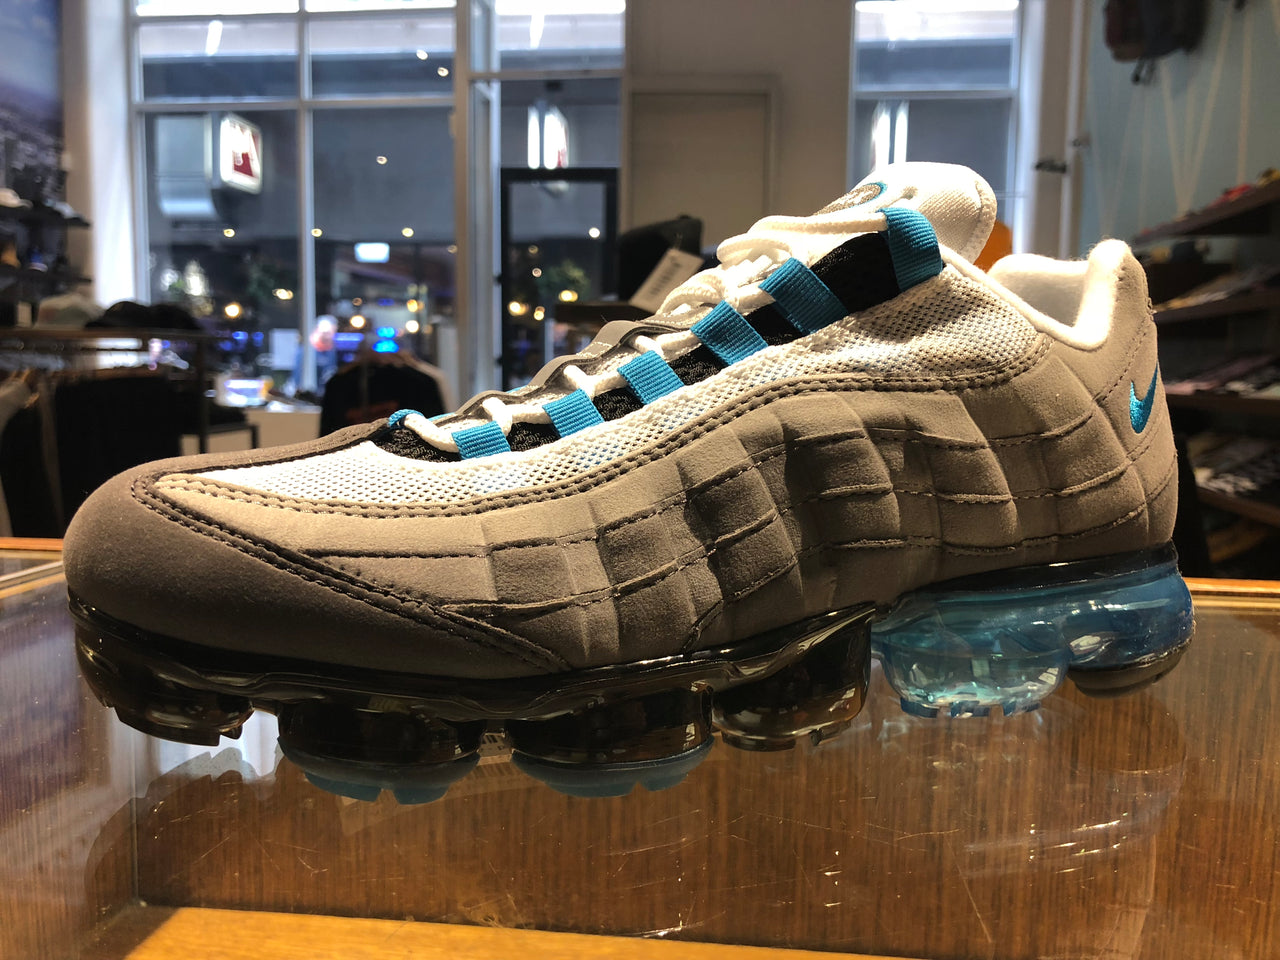 Air Vapormax 95 - black/neo turquoise